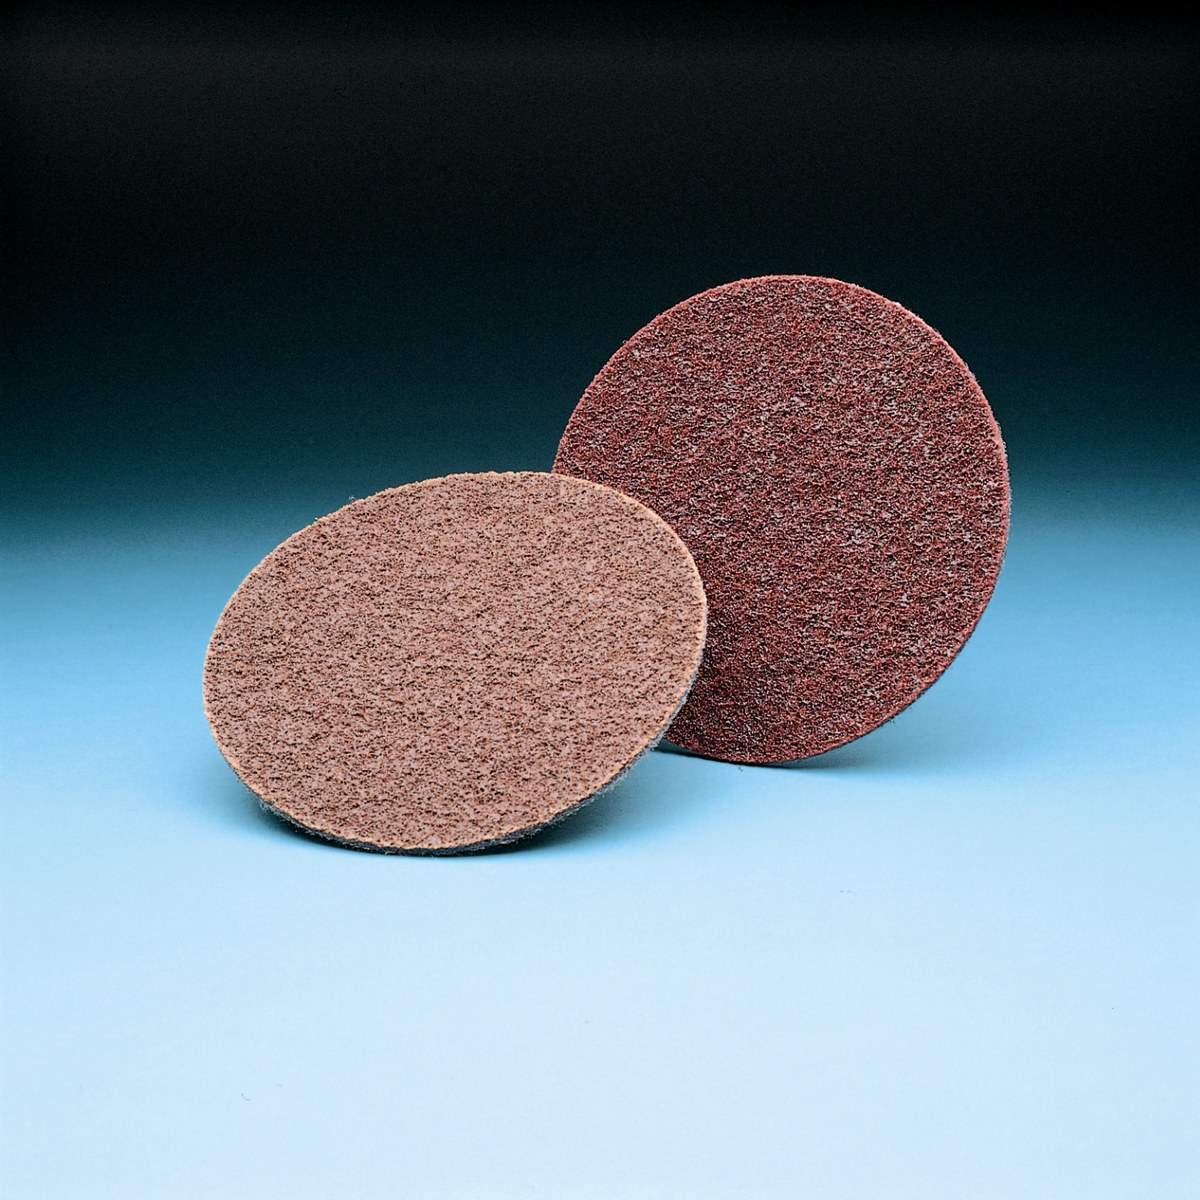 7 in Disc Dia 6 Units 6000 RPM Non-Woven Finishing Disc Aluminum Oxide